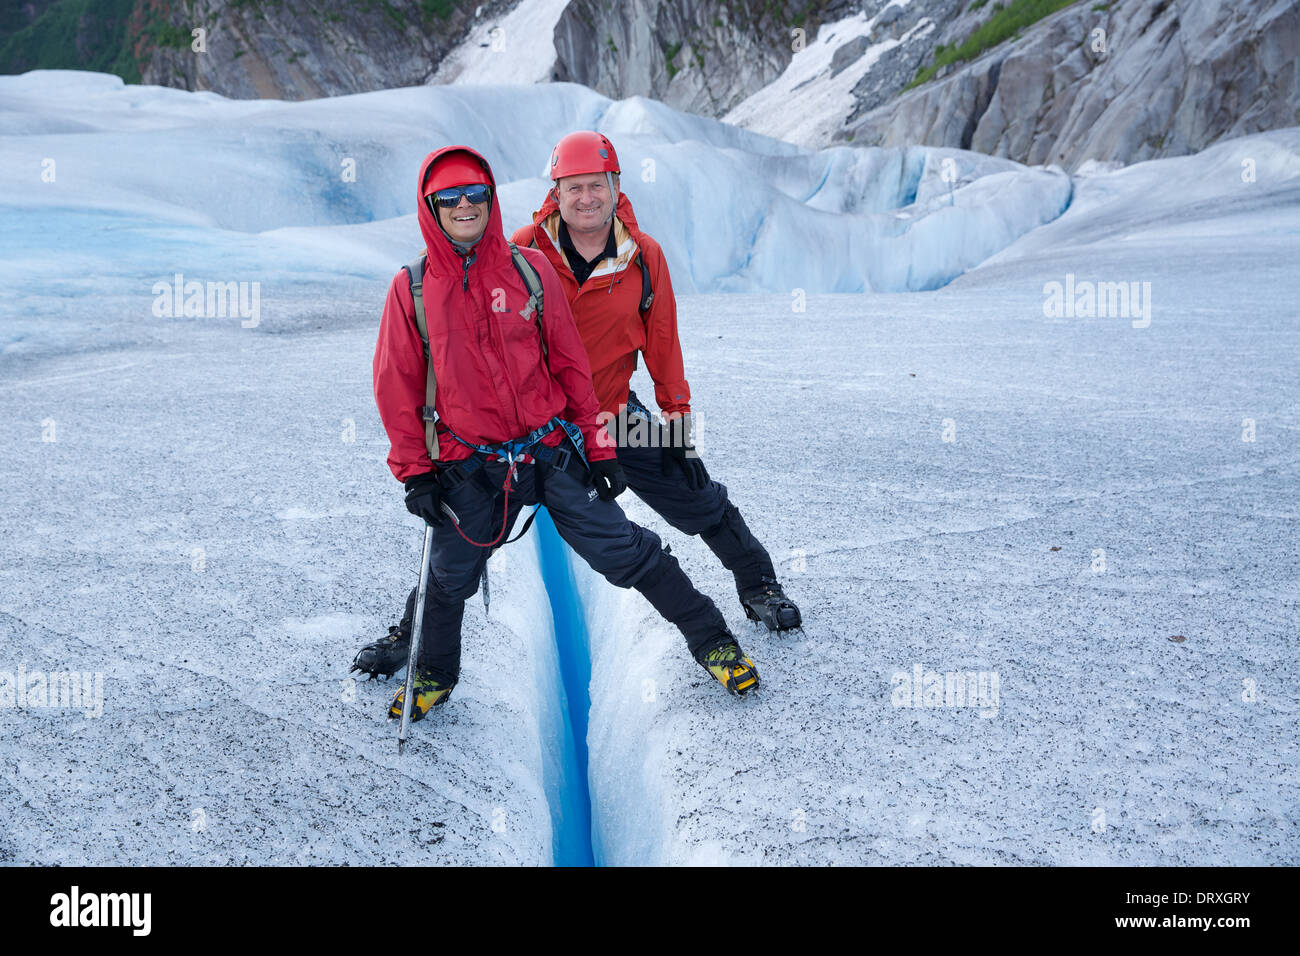 Two people stand across a crevasse in the Mendenhall Glacier, Juneau, Alaska - Stock Image